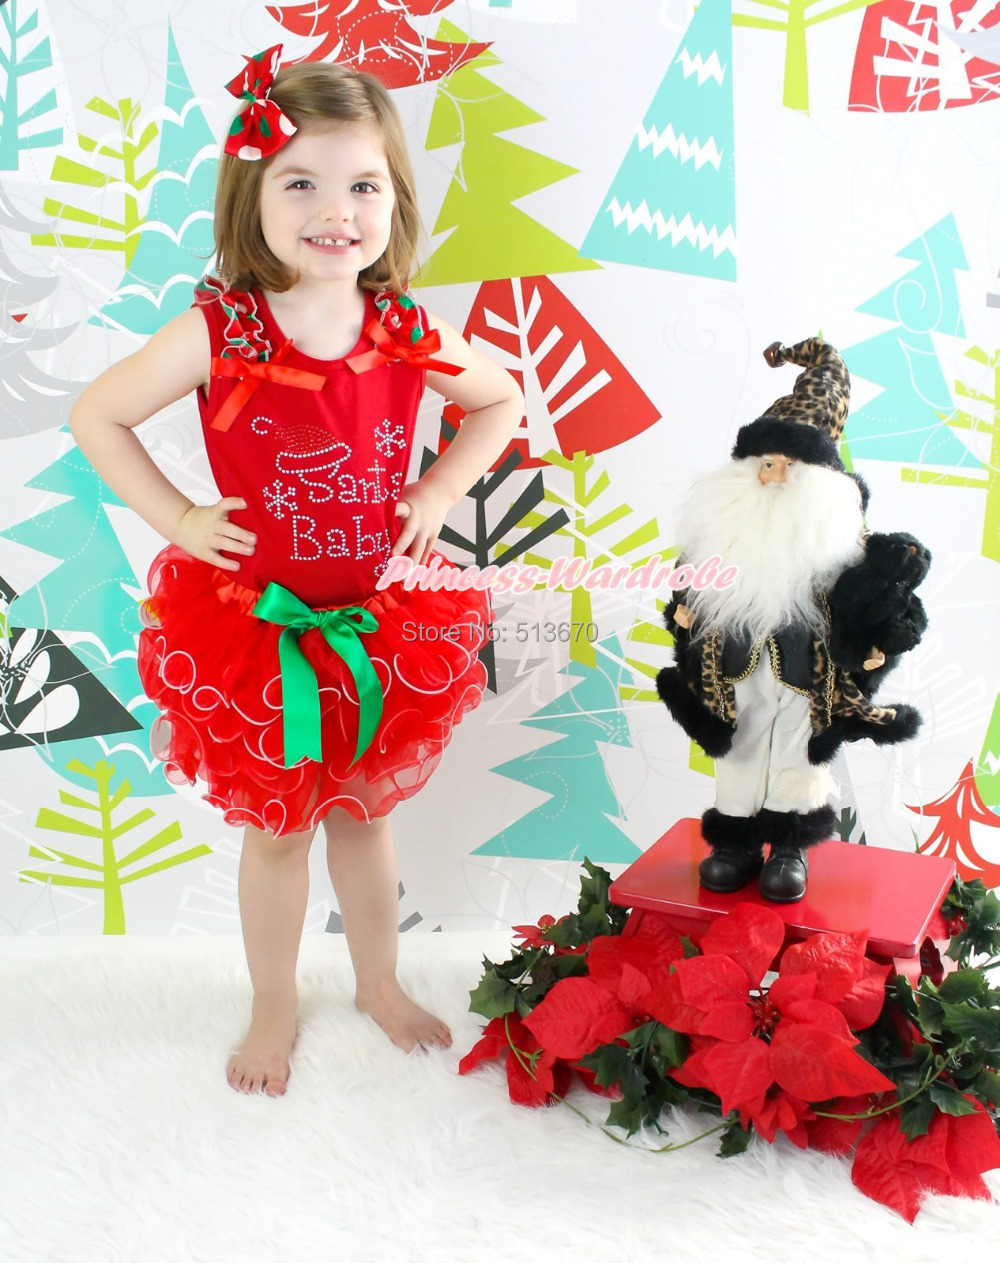 XMAS Santa Claus Head Print Red White Dot Ruffle Lacing Santa Claus Top Girl Red Petal Pettiskirt Outfit Set NB-8Y MAPSA0070 my 1st christmas santa claus white top xmas dot waist girls pettiskirt set 1 8y